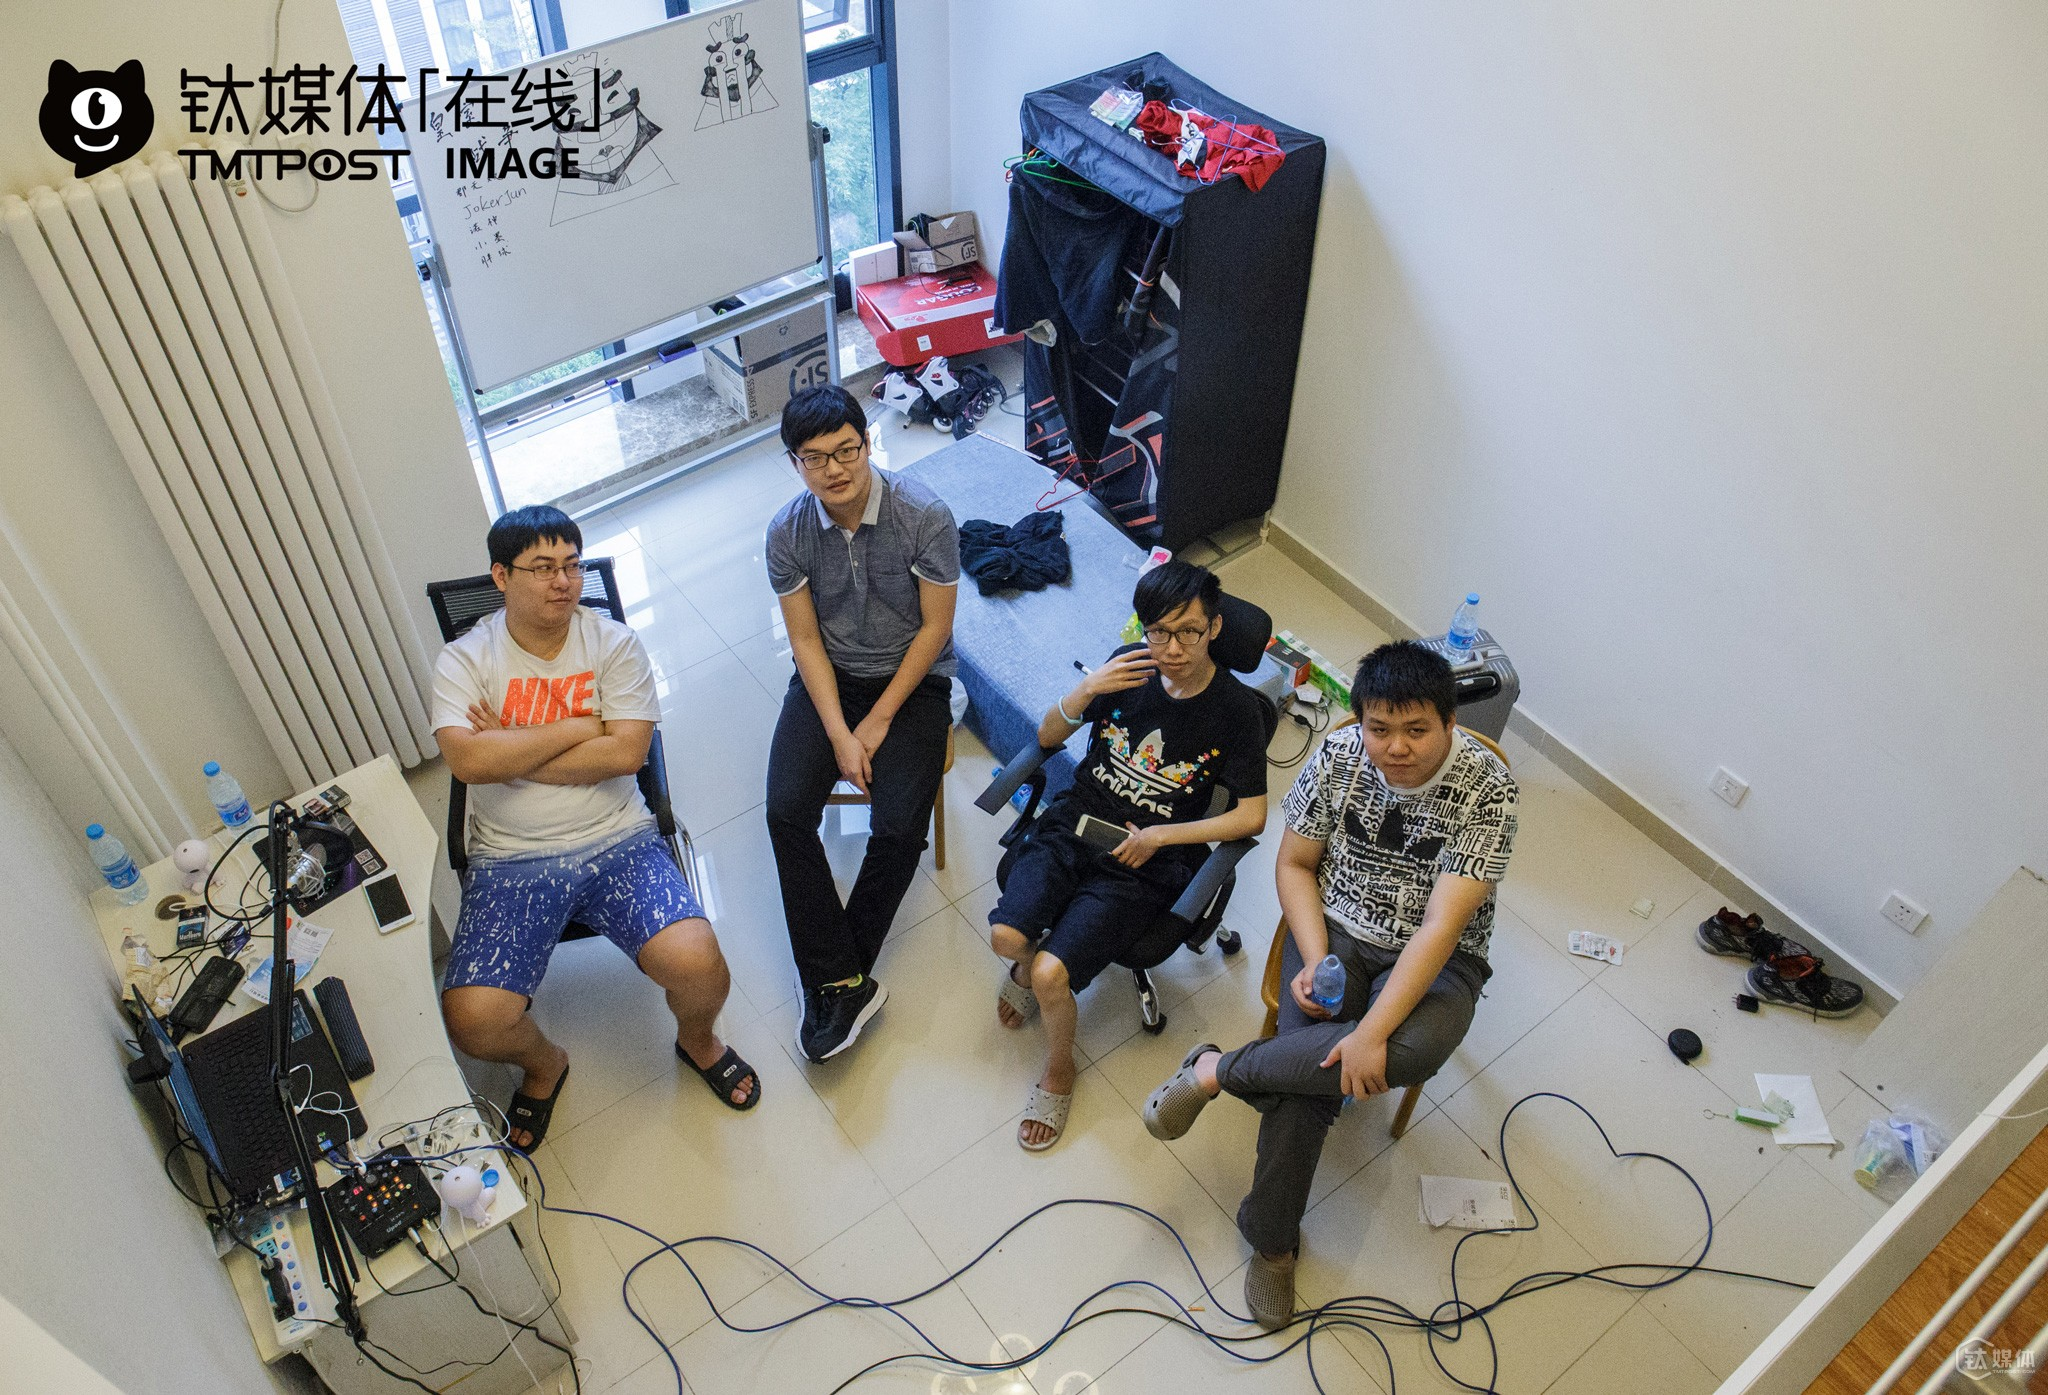 Junwushuang, Xiaoyang, Junhua and Nuoshen (from left to right) are all game players invited by an electronic sports club in Shunyi District, Beijing for a new mobile game. In April, 2016, their rankings rose to top ten globally and drew the club's attention. Finally, they've got the opportunity to realize their electronic sports dreams.